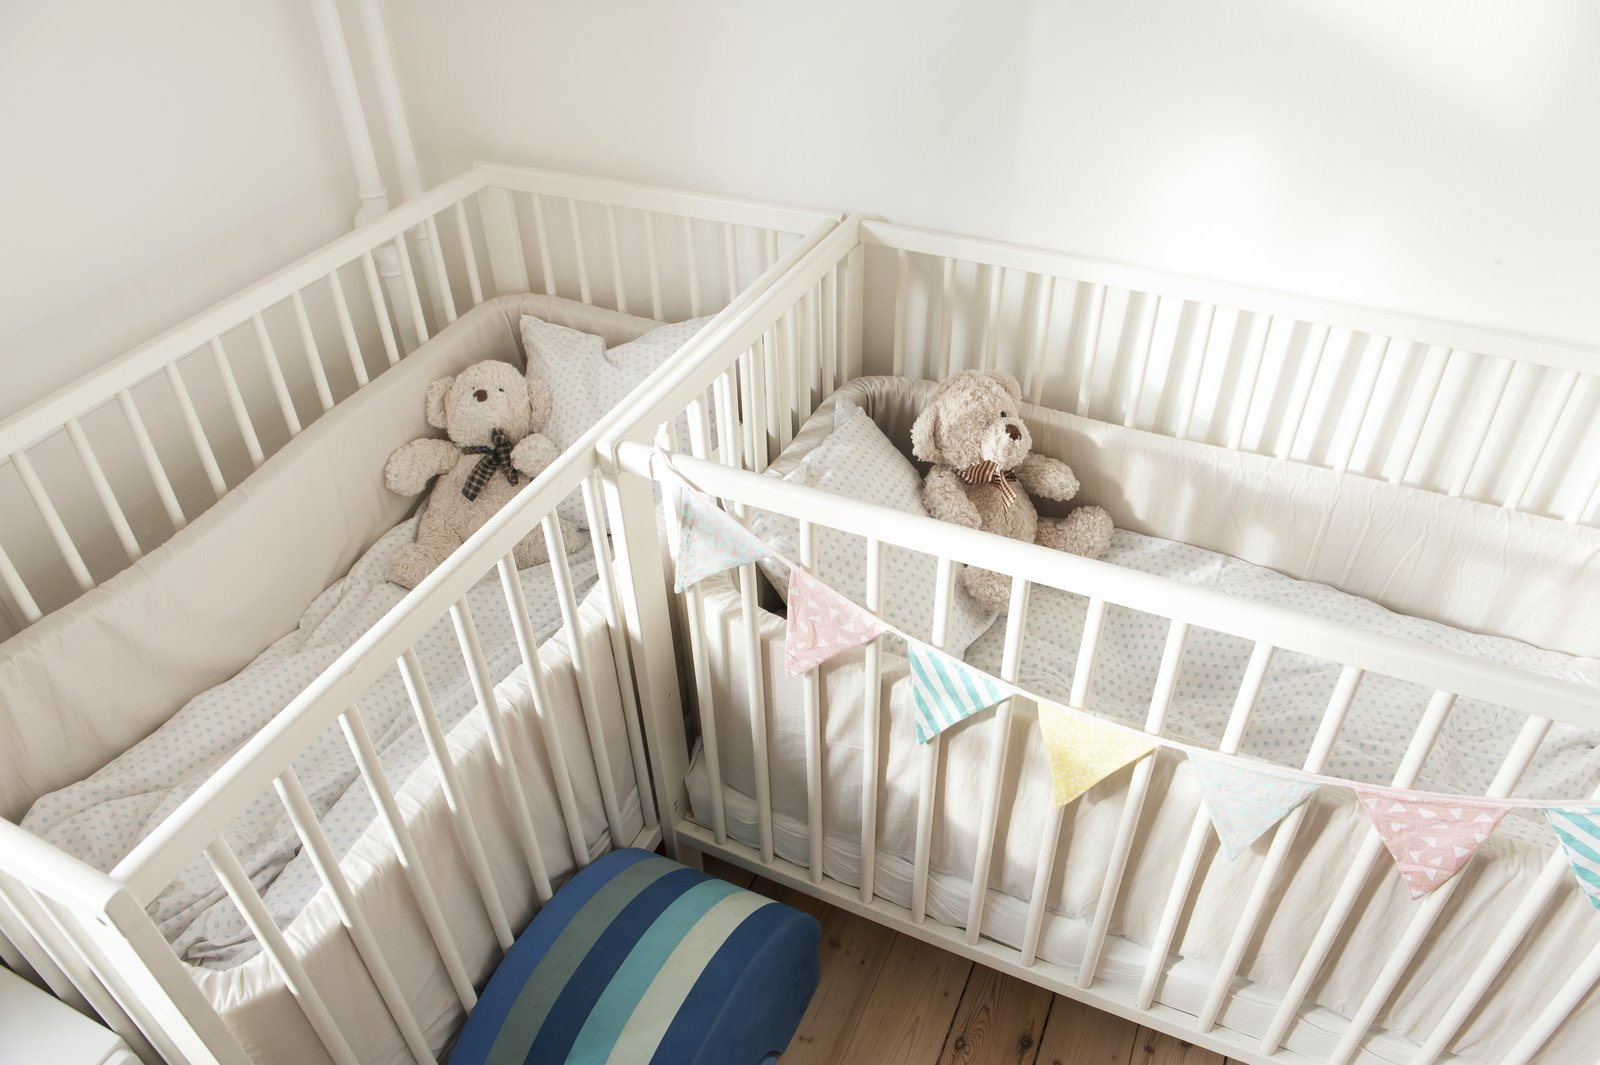 Kids Room, Bedroom Room Type, Bed, Medium Hardwood Floor, Toddler Age, and Neutral Gender cream cribs in child's nursery   Pretty and Sweet Family Flat by Petra Ford